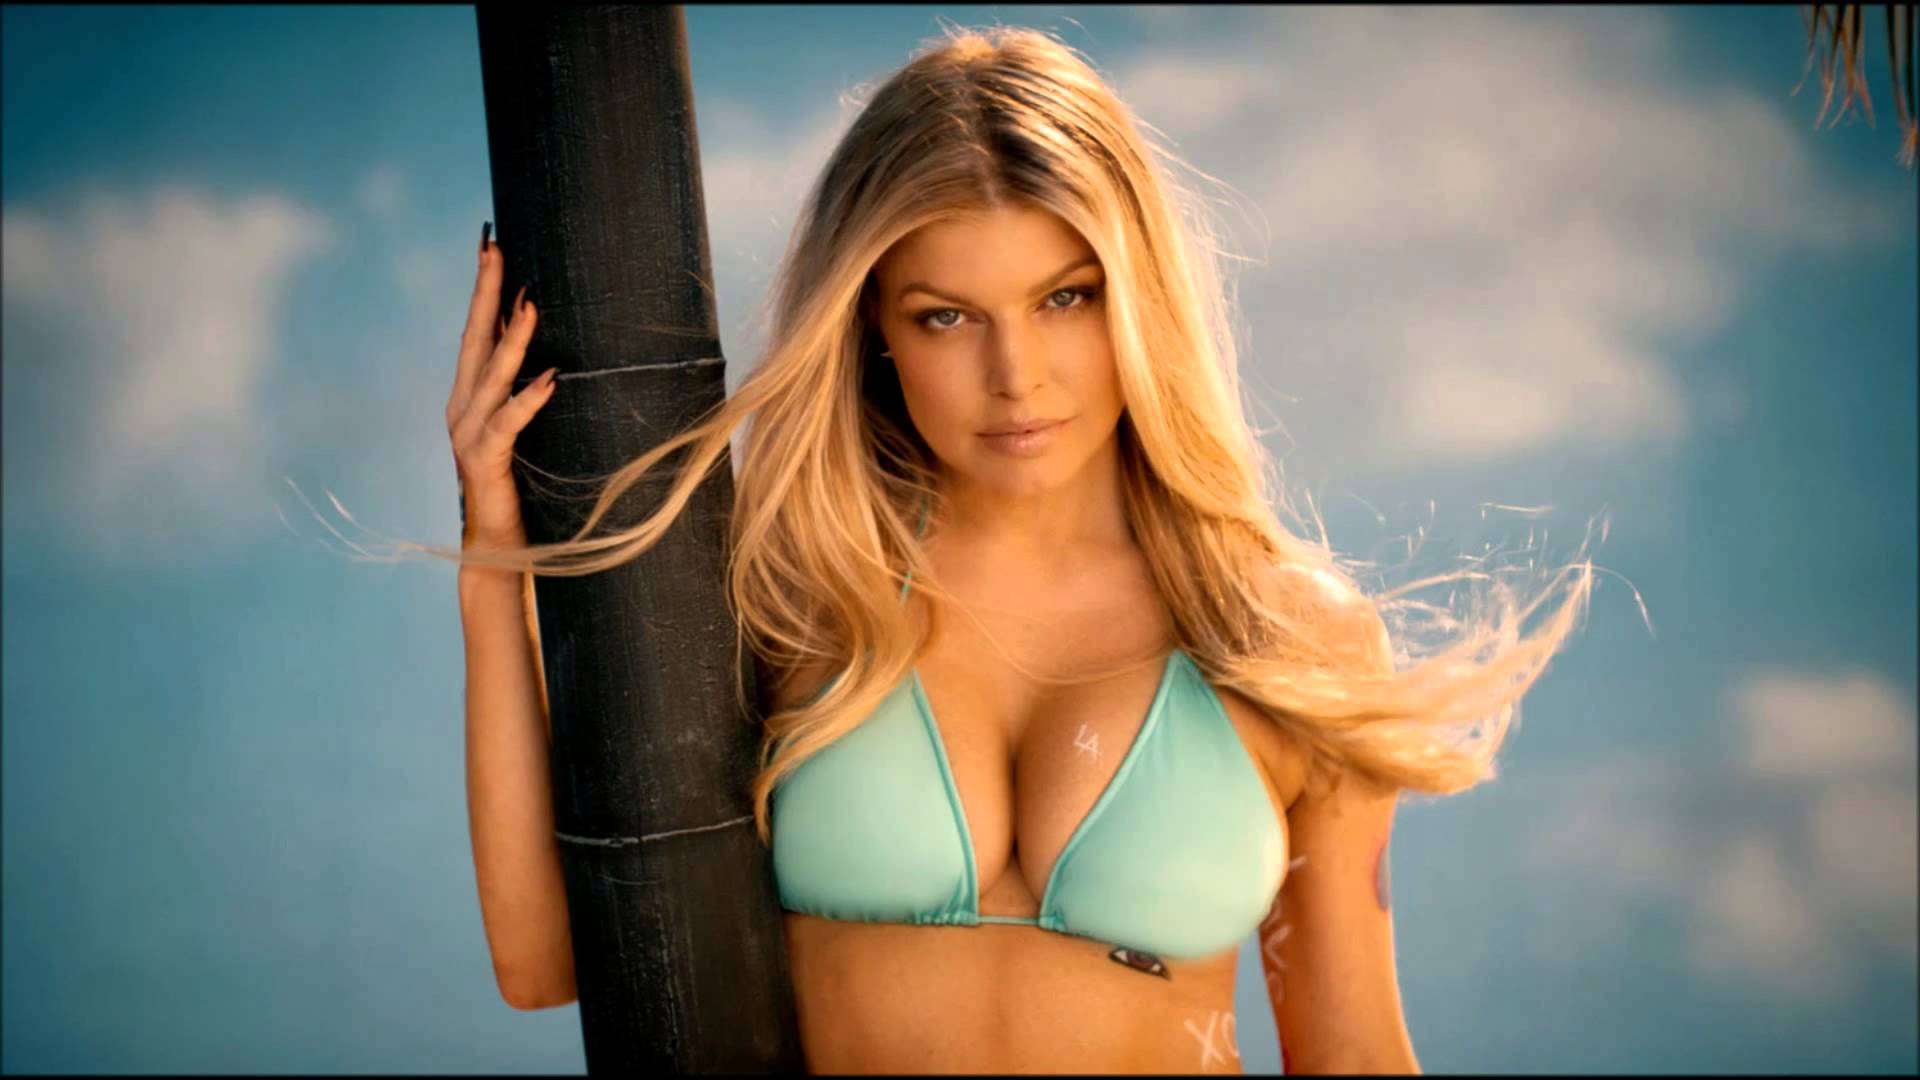 Fergie hot instagram photos sexy bikini near-nude pics